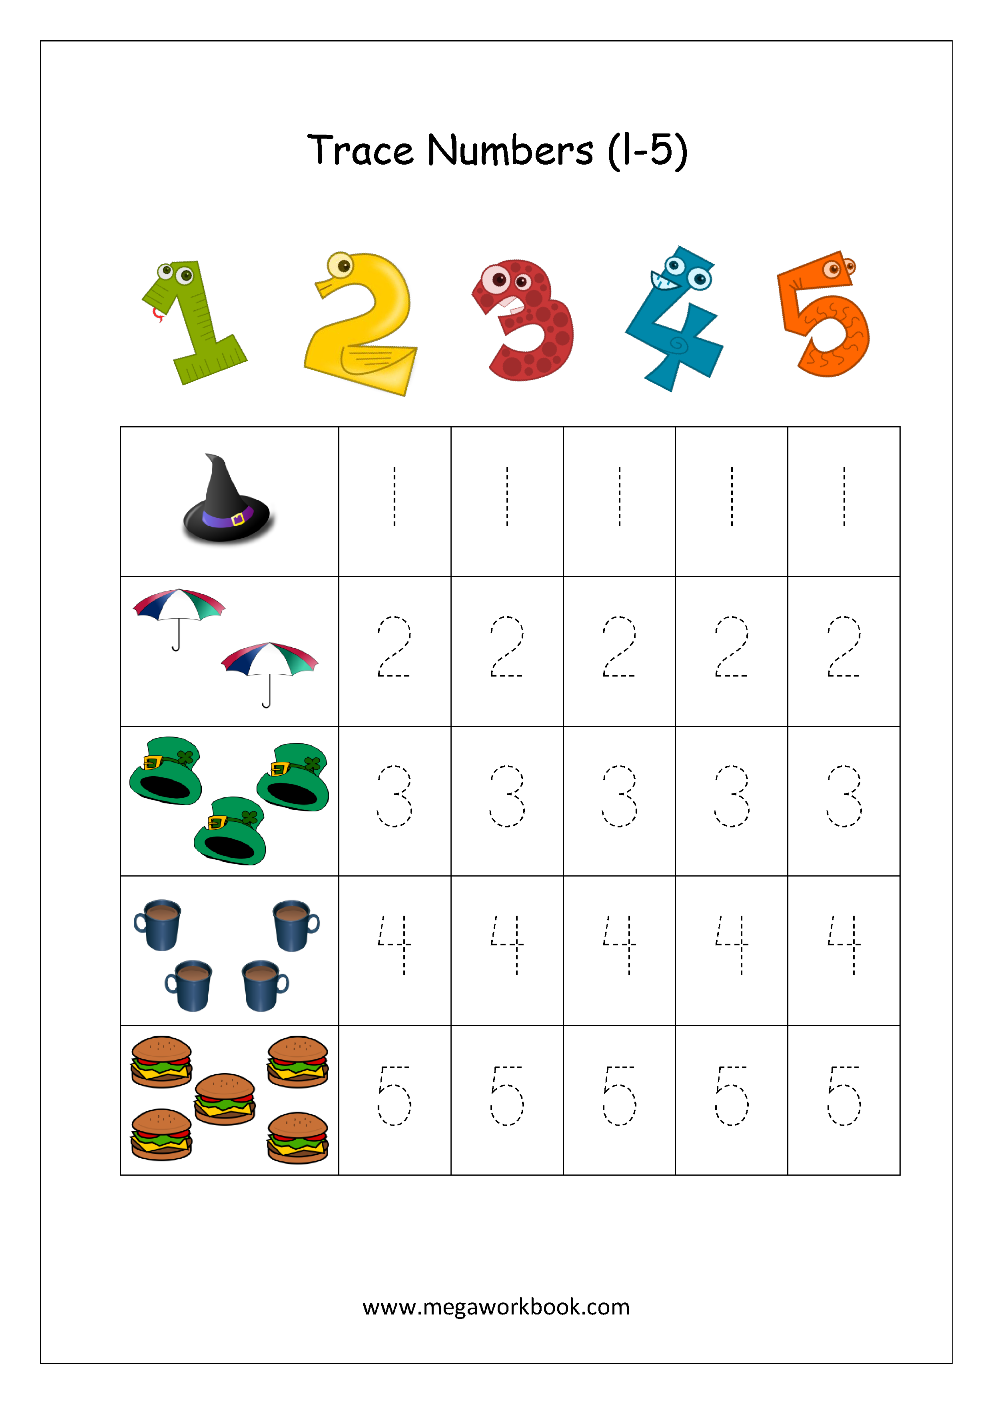 Free Printable Number Tracing And Writing 1 10 Worksheets Number Recognition An Free Preschool Worksheets Preschool Worksheets Kindergarten Math Worksheets [ 1403 x 992 Pixel ]